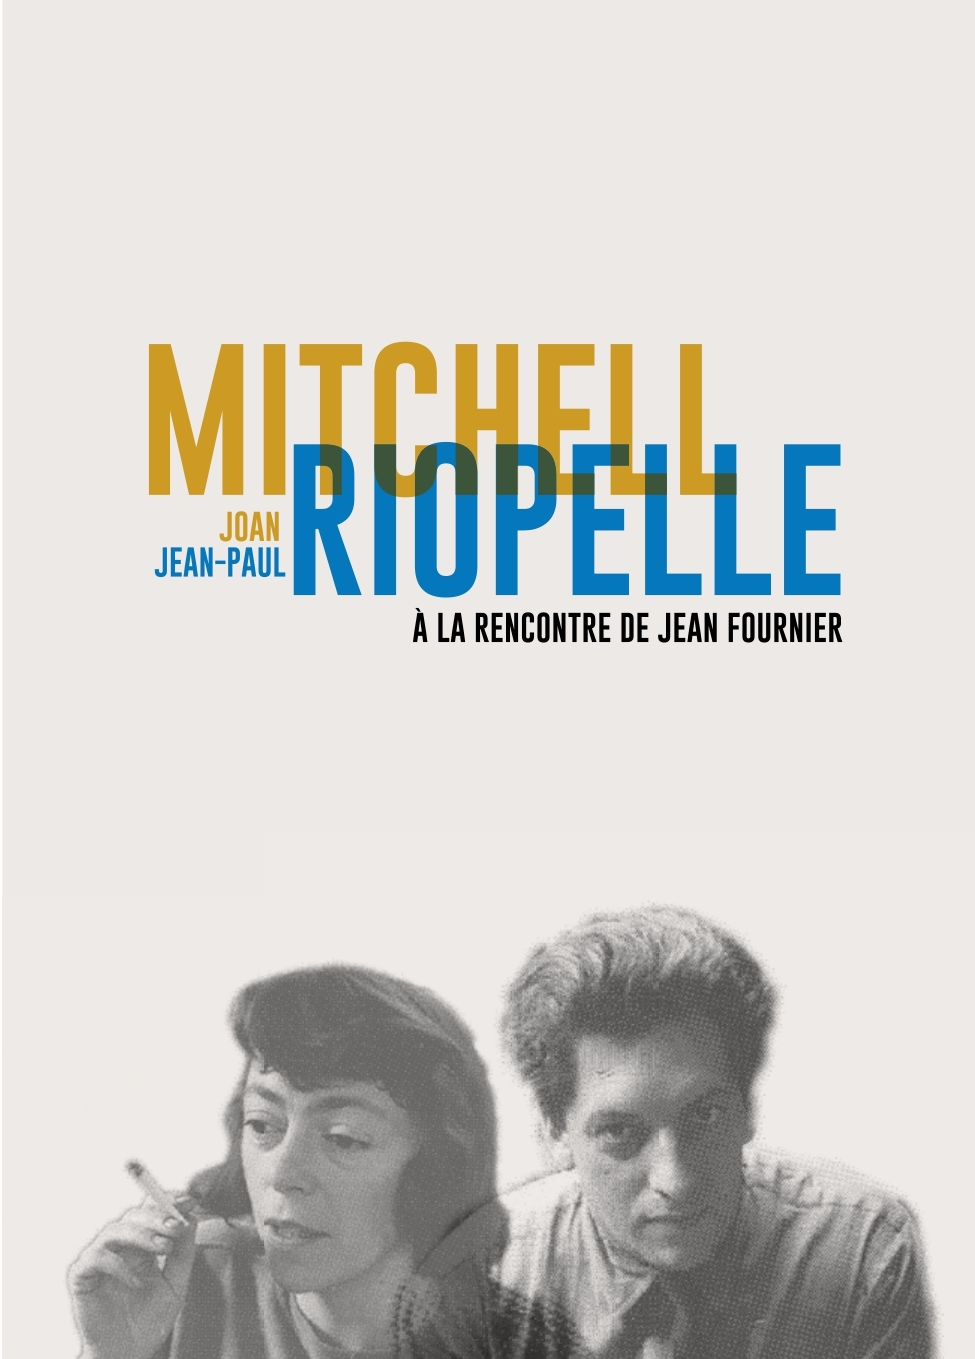 JOAN MITCHELL / JEAN-PAUL RIOPELLE - A LA RENCONTRE DE JEAN FOURNIER